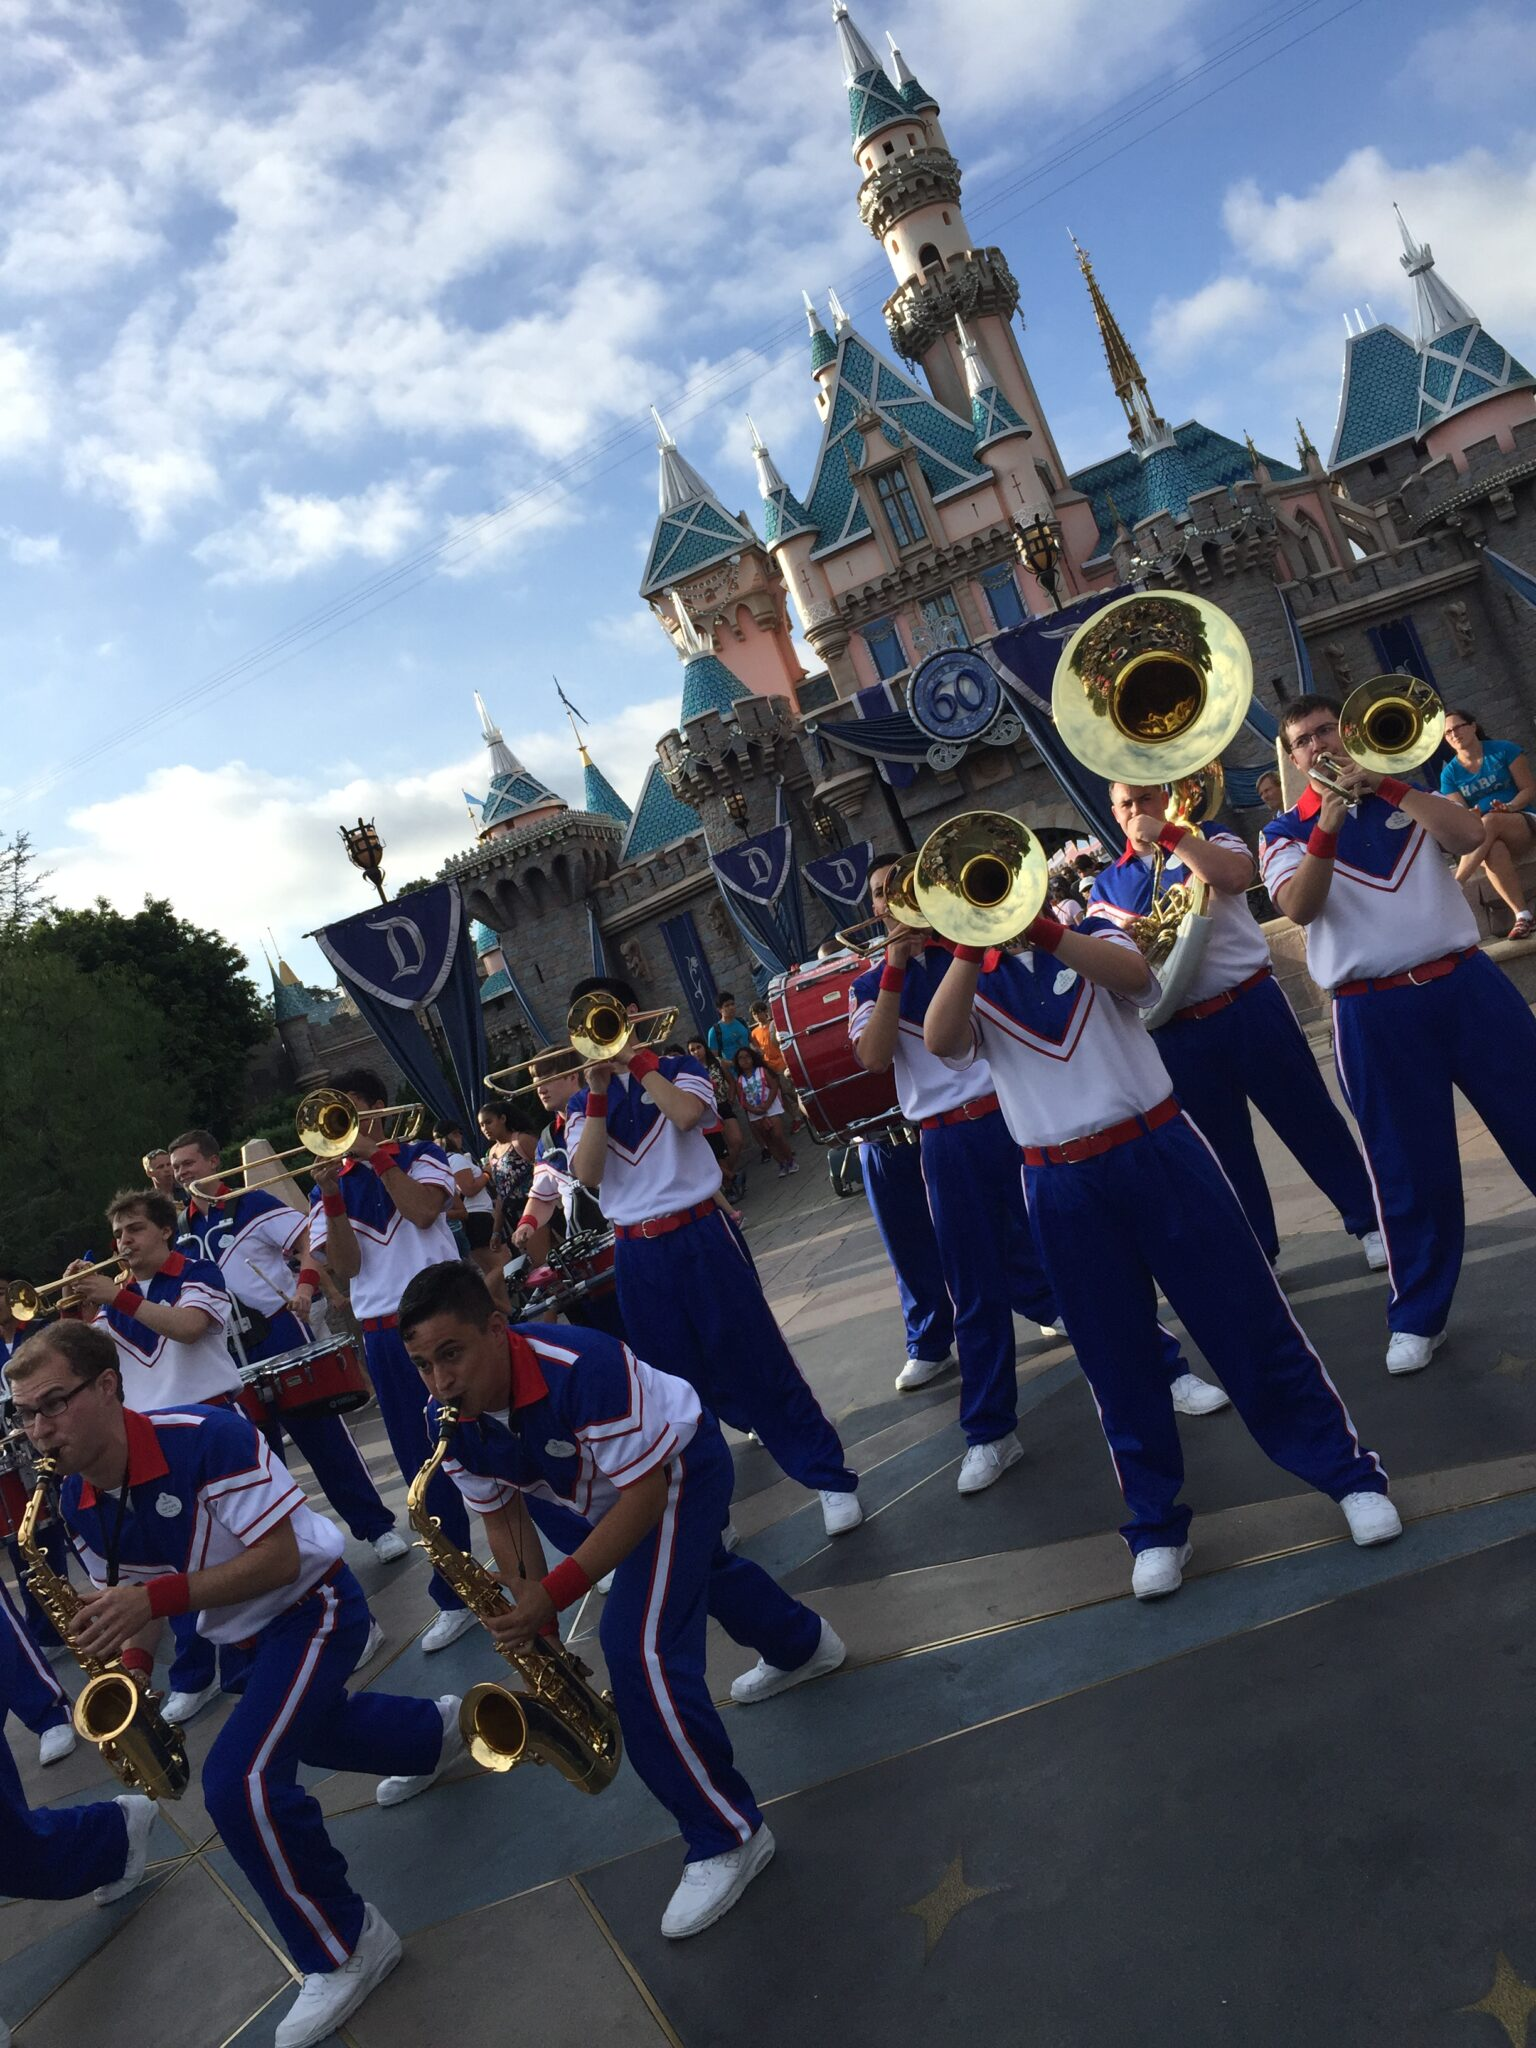 A Summer Hit! – All American College Band at Disneyland